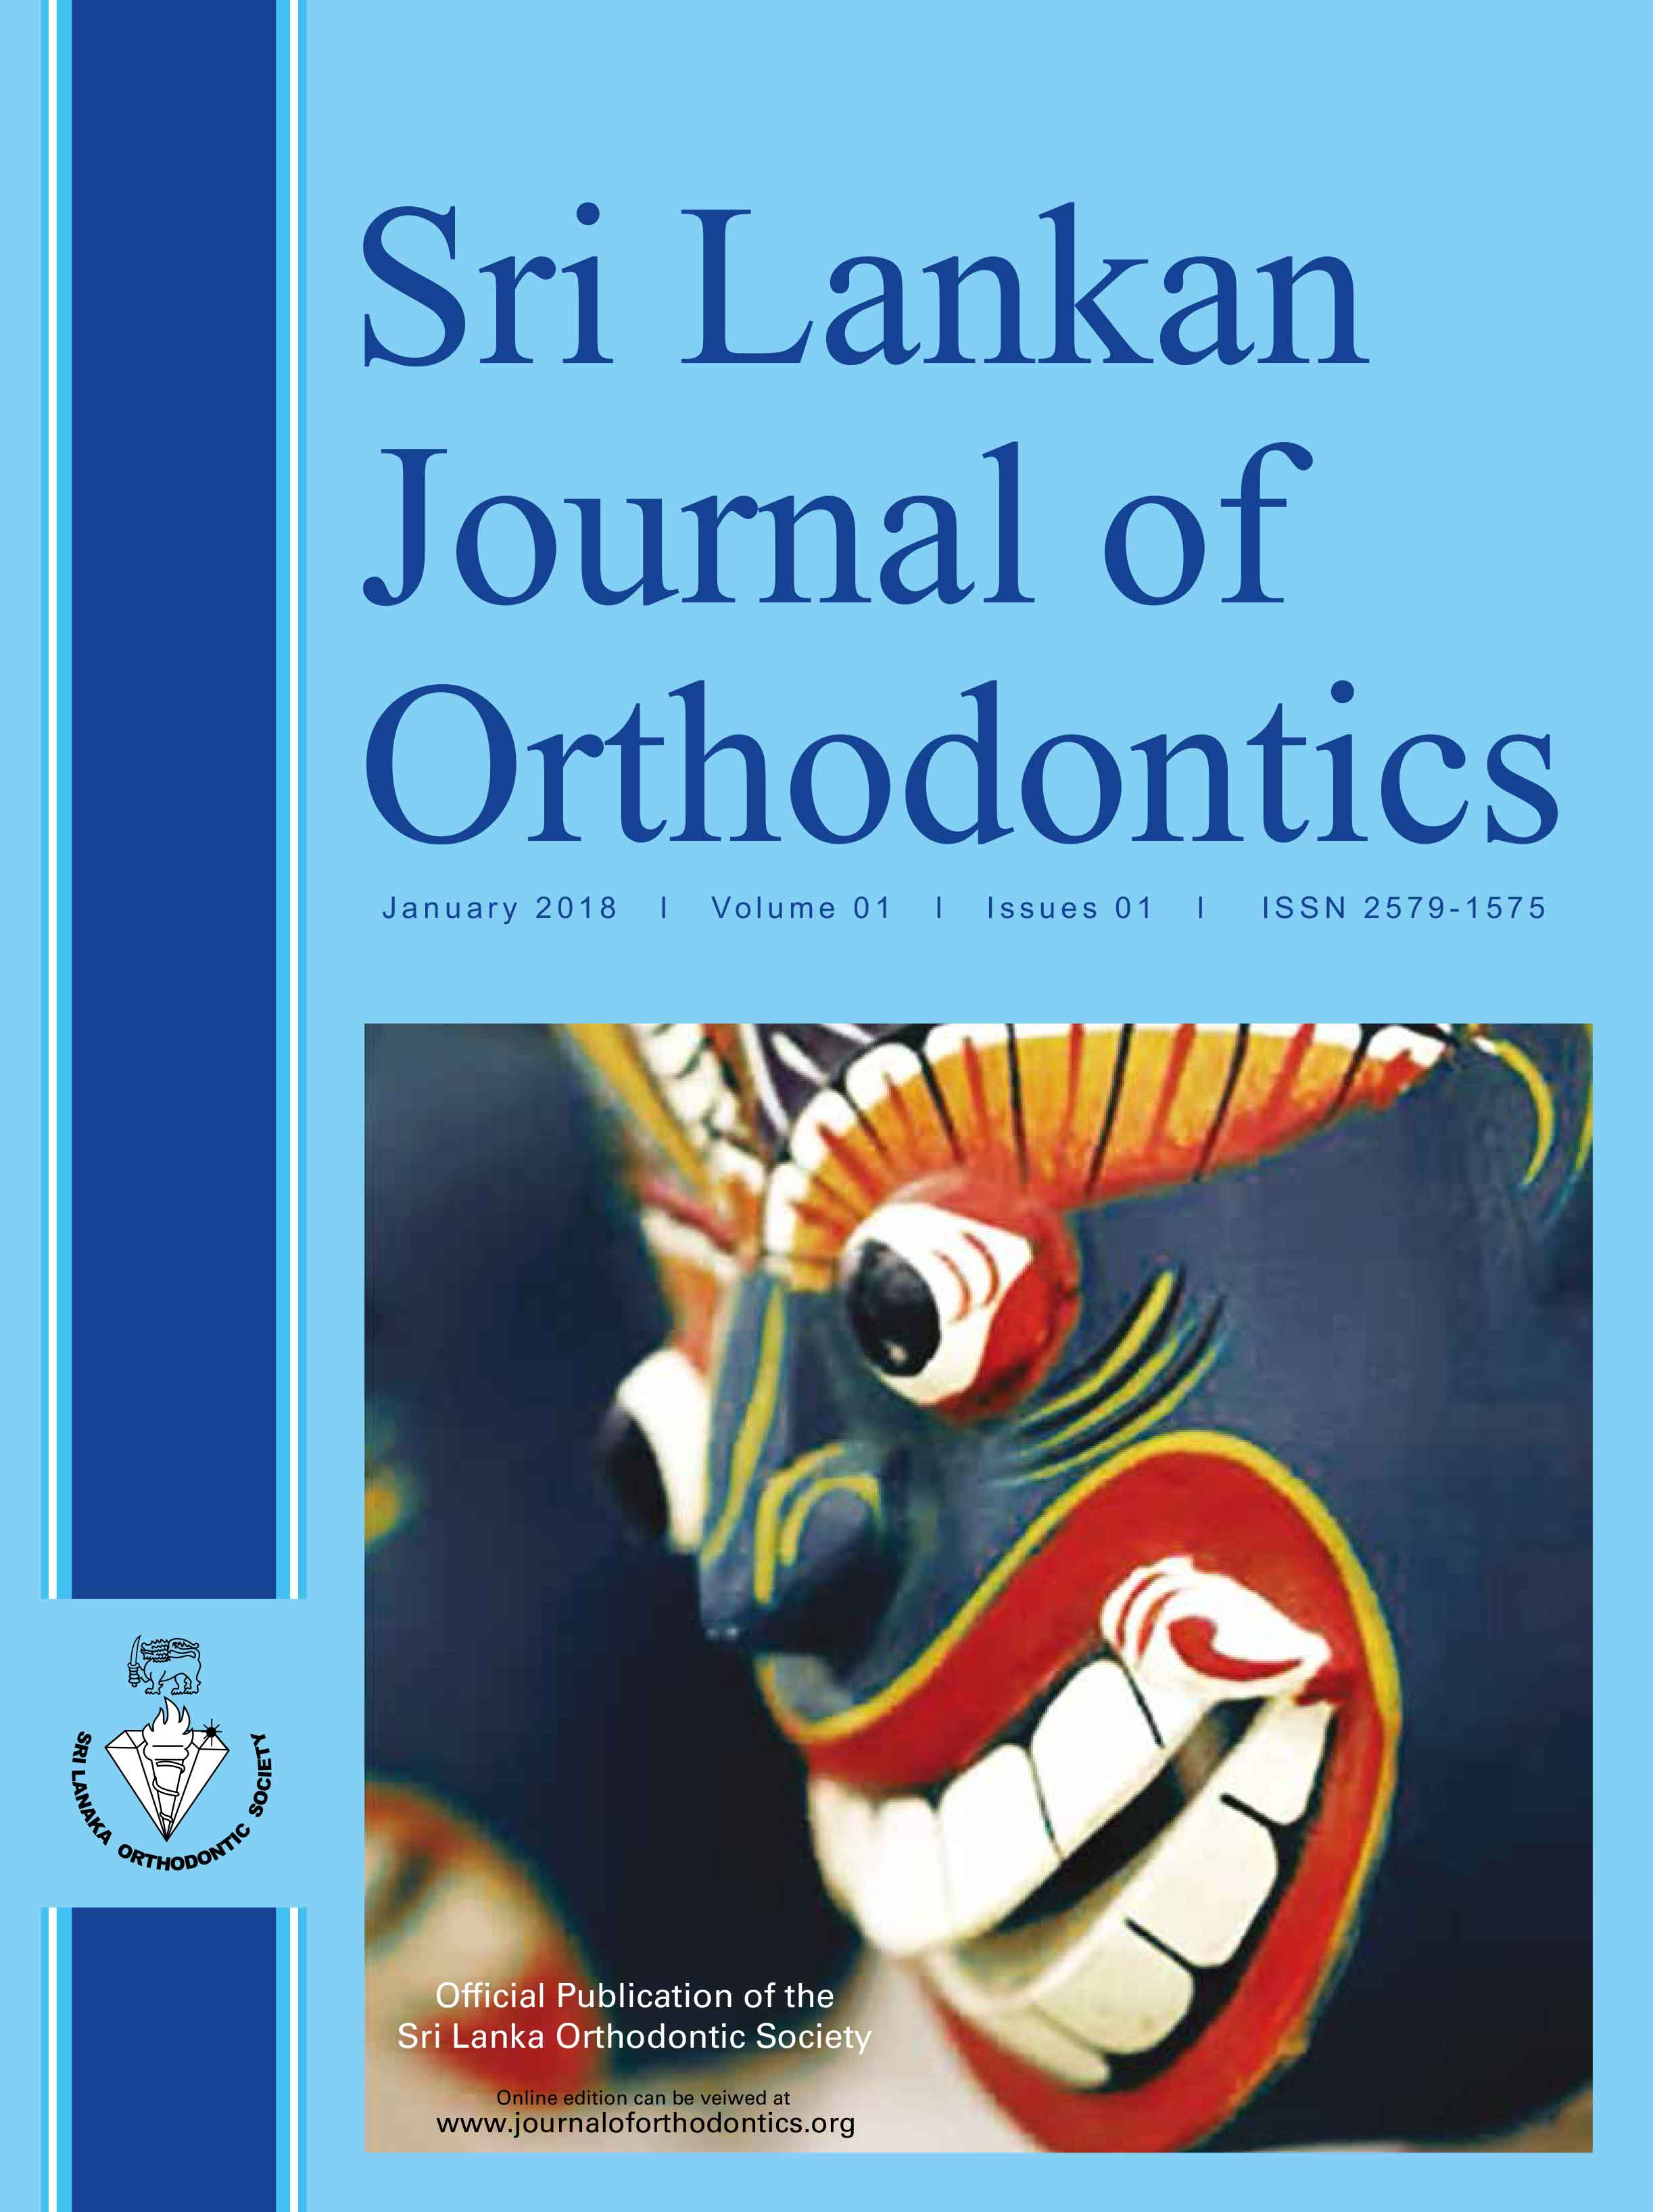 Sri Lanka Journal of Orthodontics